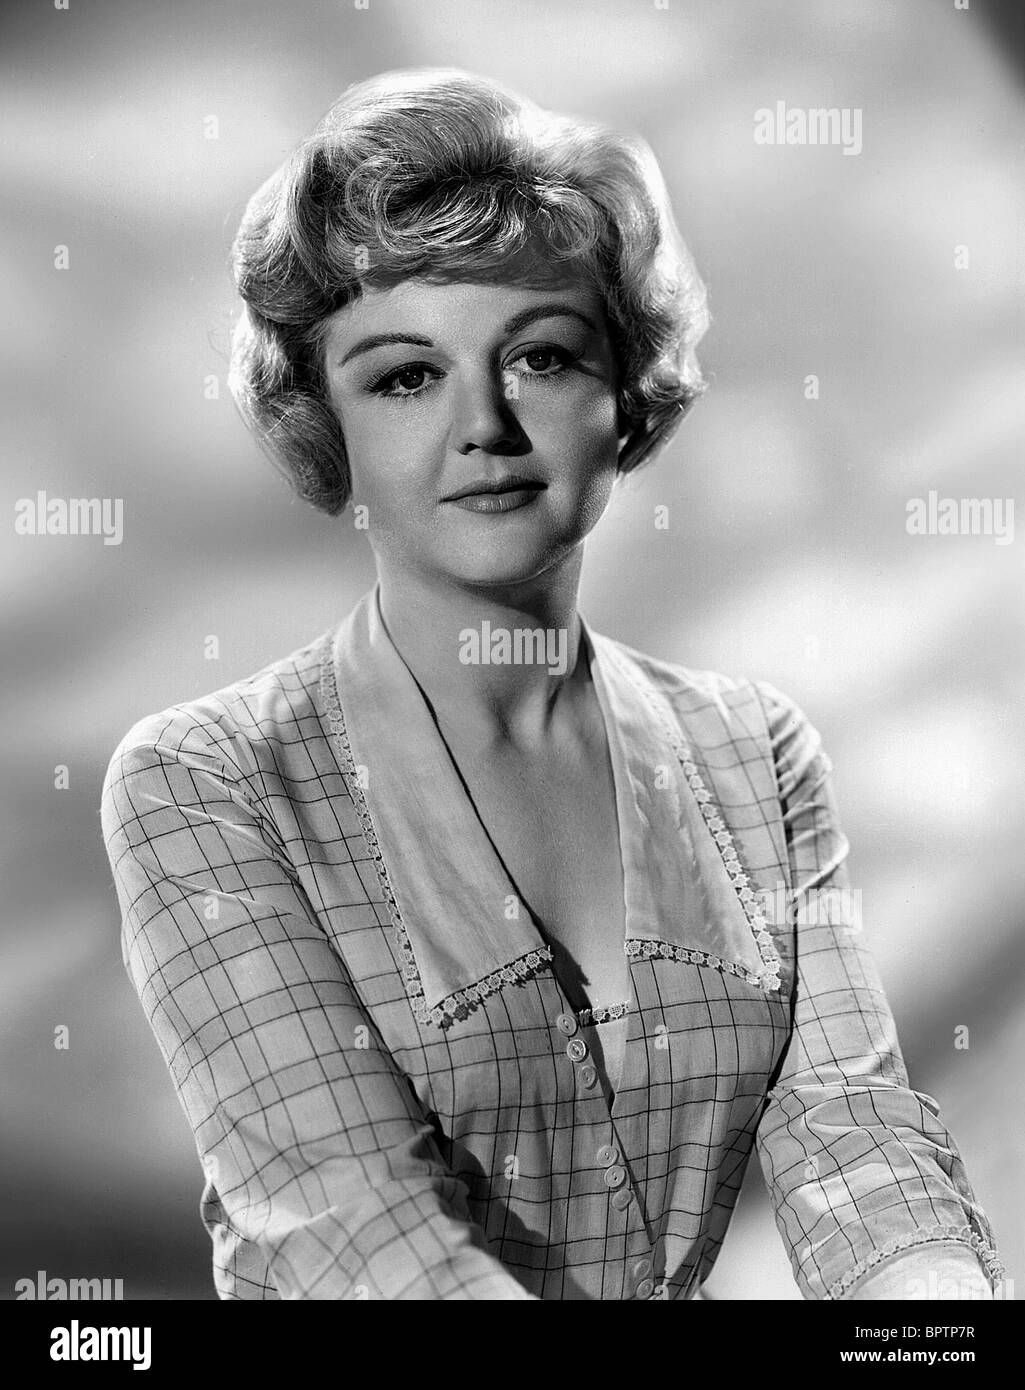 ANGELA LANSBURY ACTRESS (1960) - Stock Image